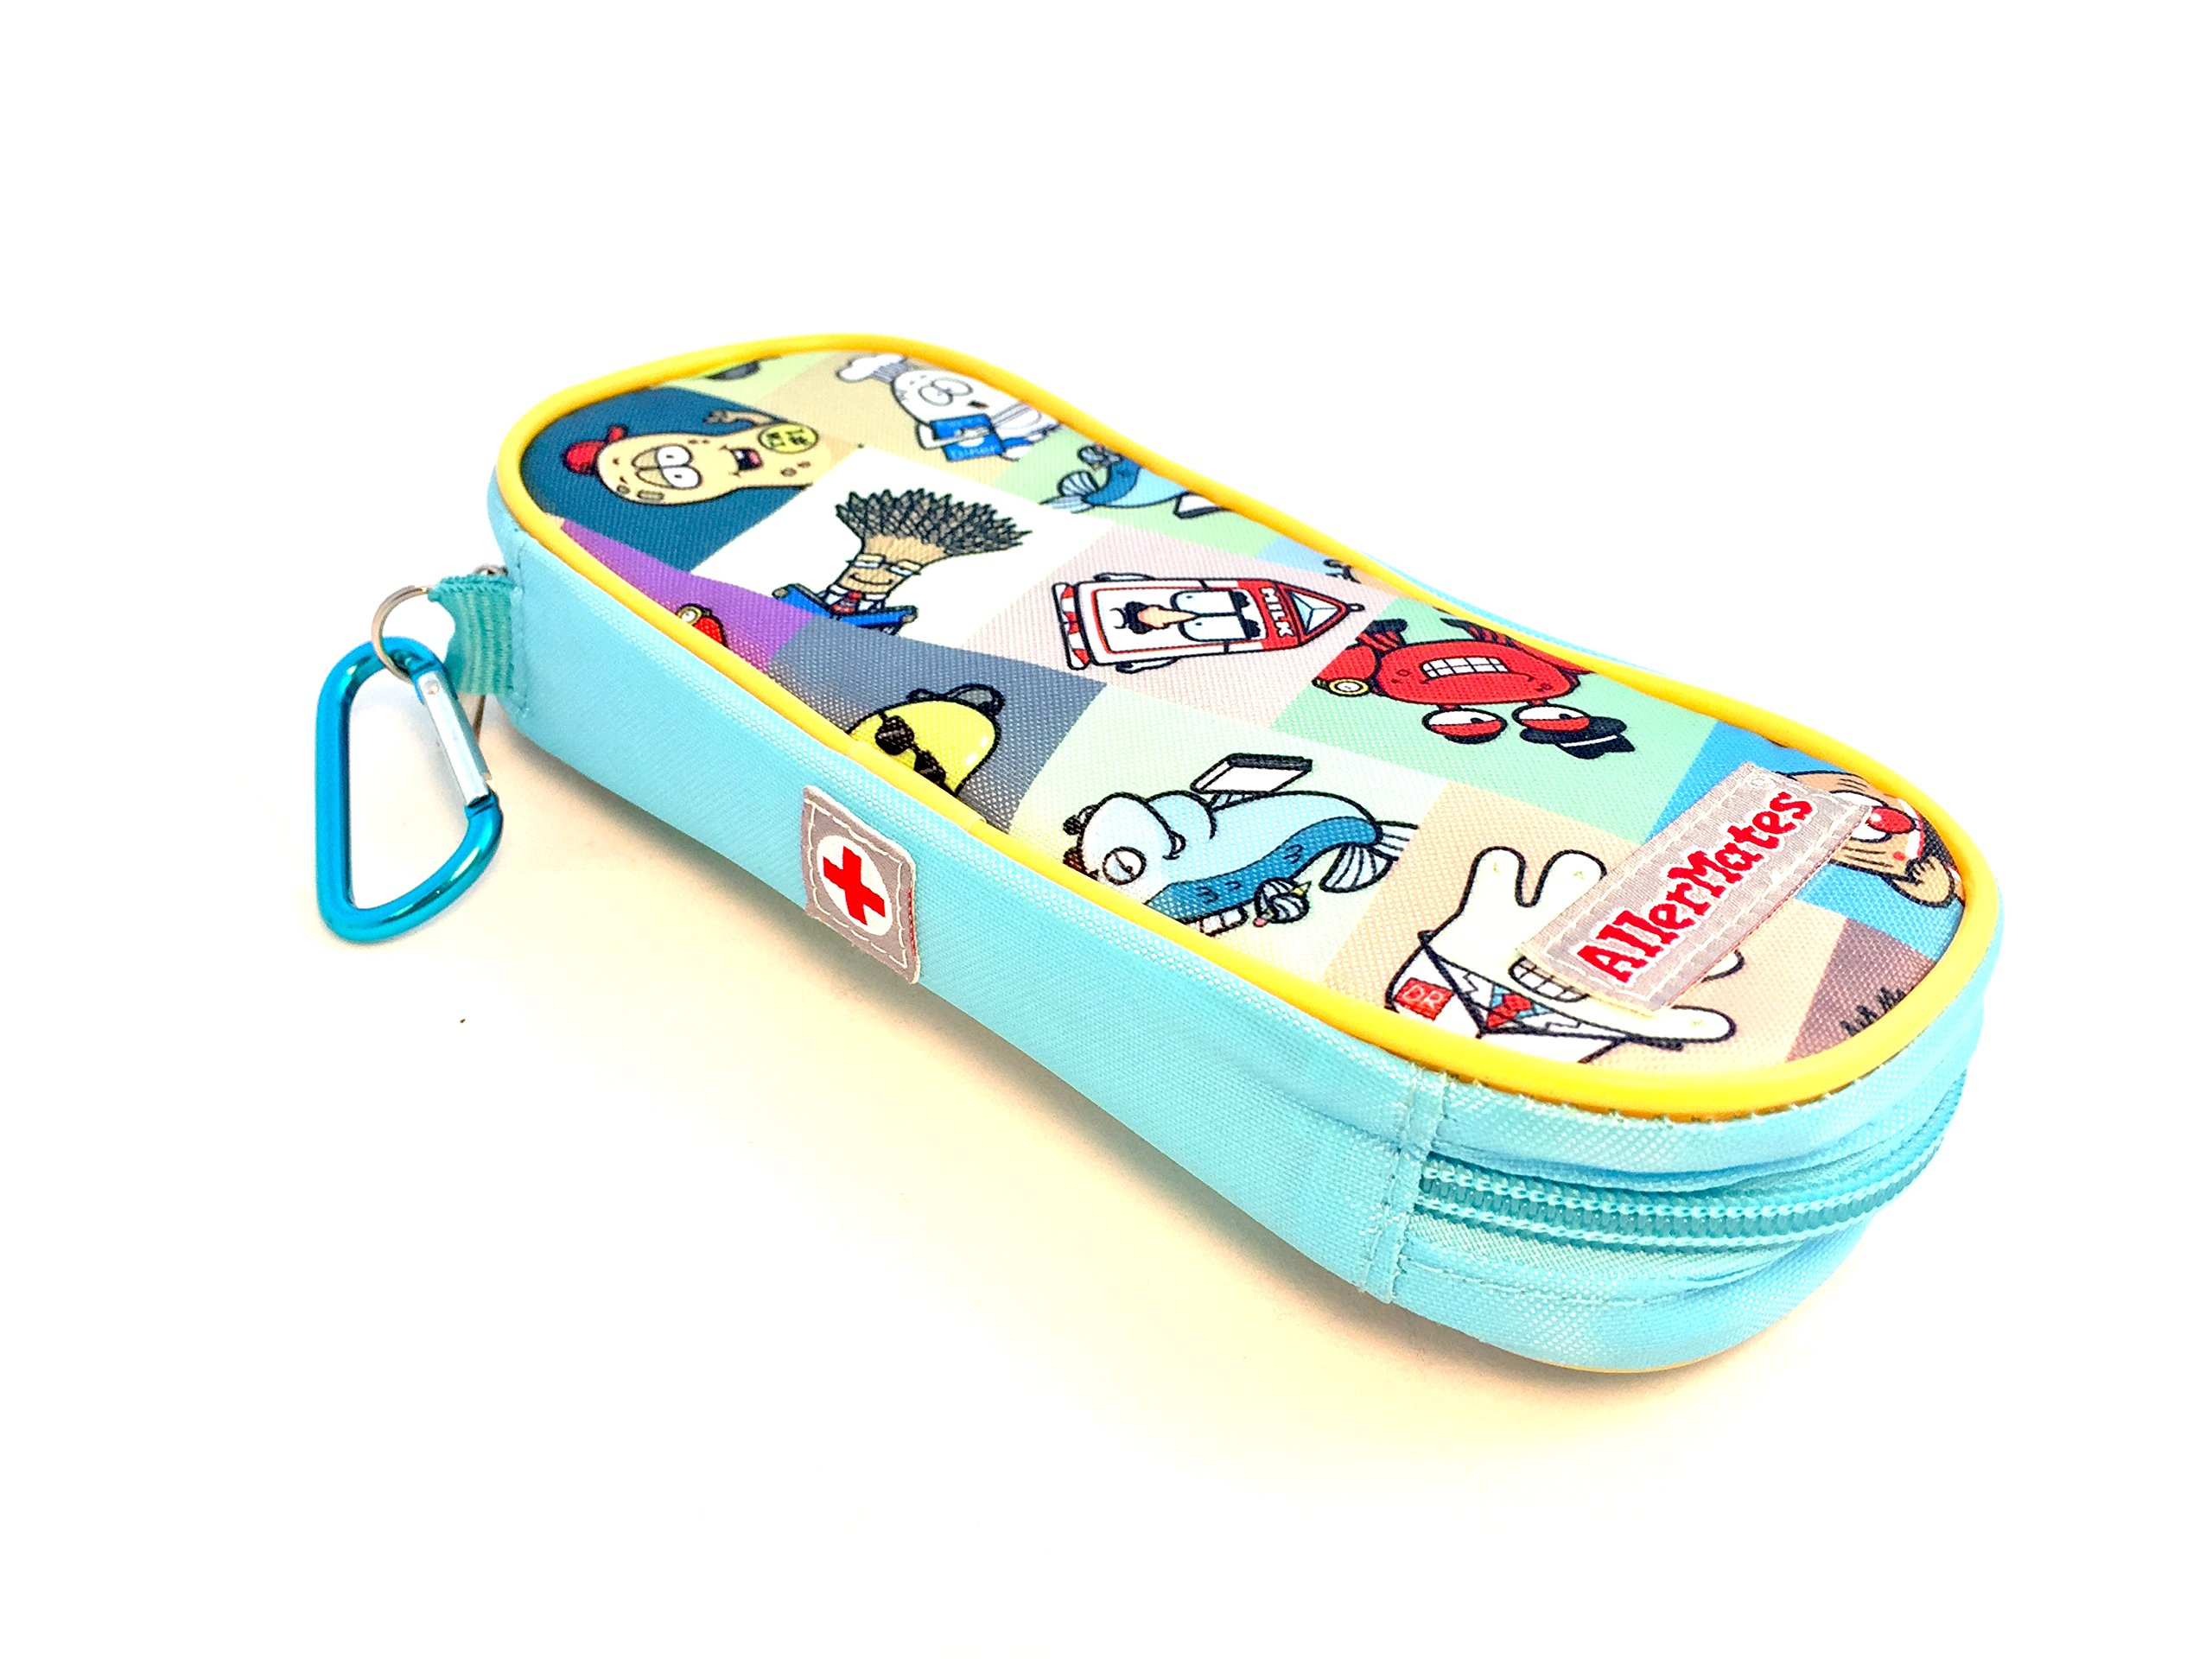 AllerMates - Allergy Medicine Carrying Case for EpiPen or Auvi-Q auto-injectors: Squares Pattern - Epipen Case by Allermates